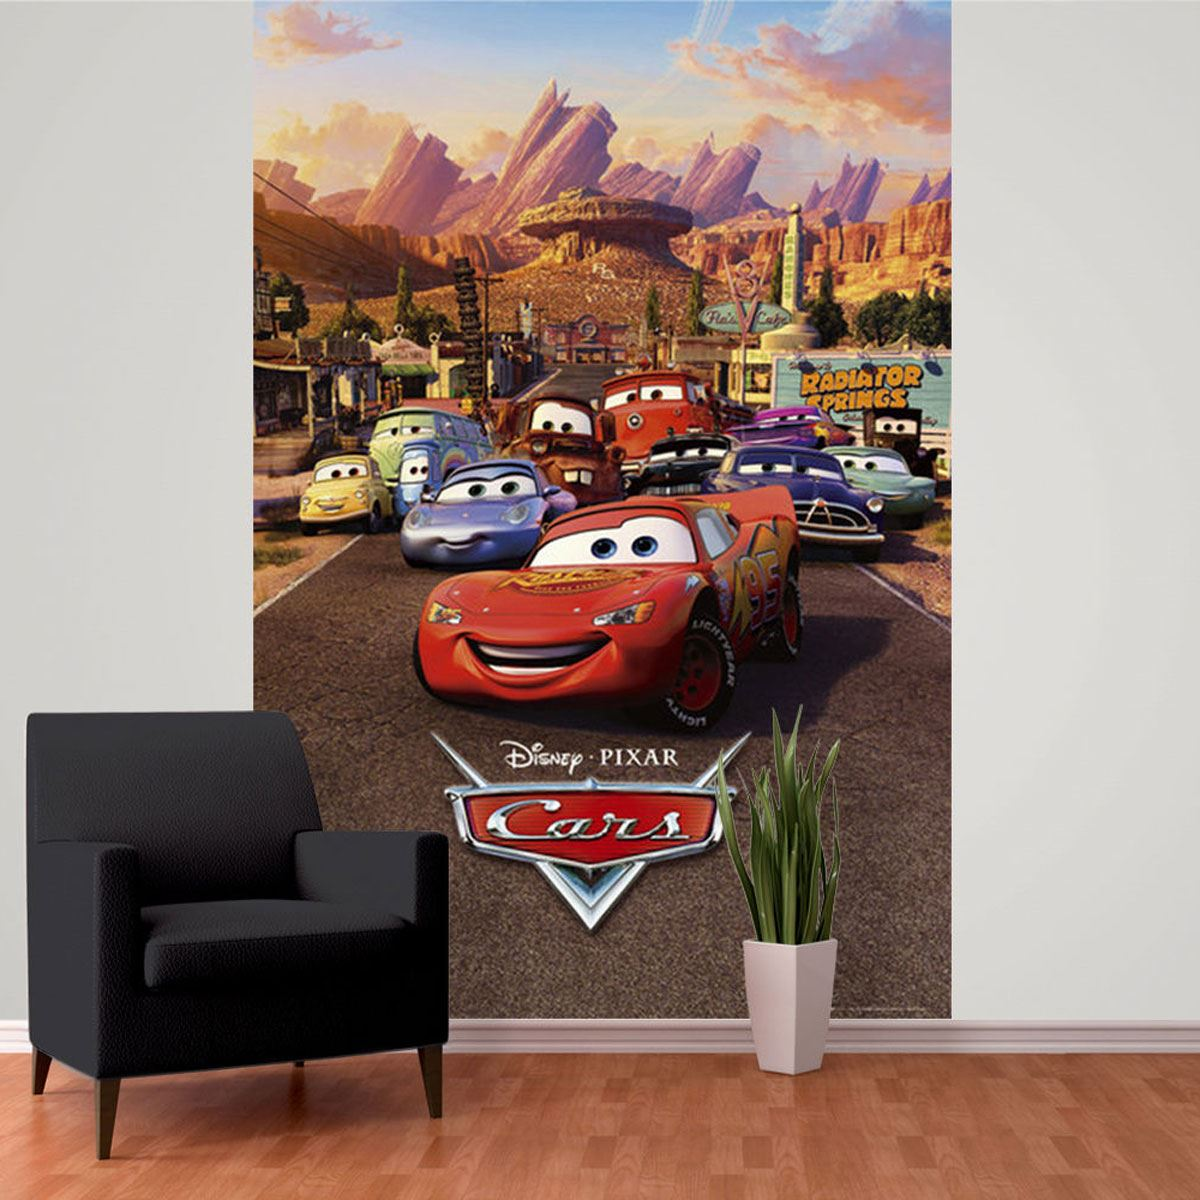 Disney cars wall murals 6 designs available kids bedroom for Disney cars bedroom ideas